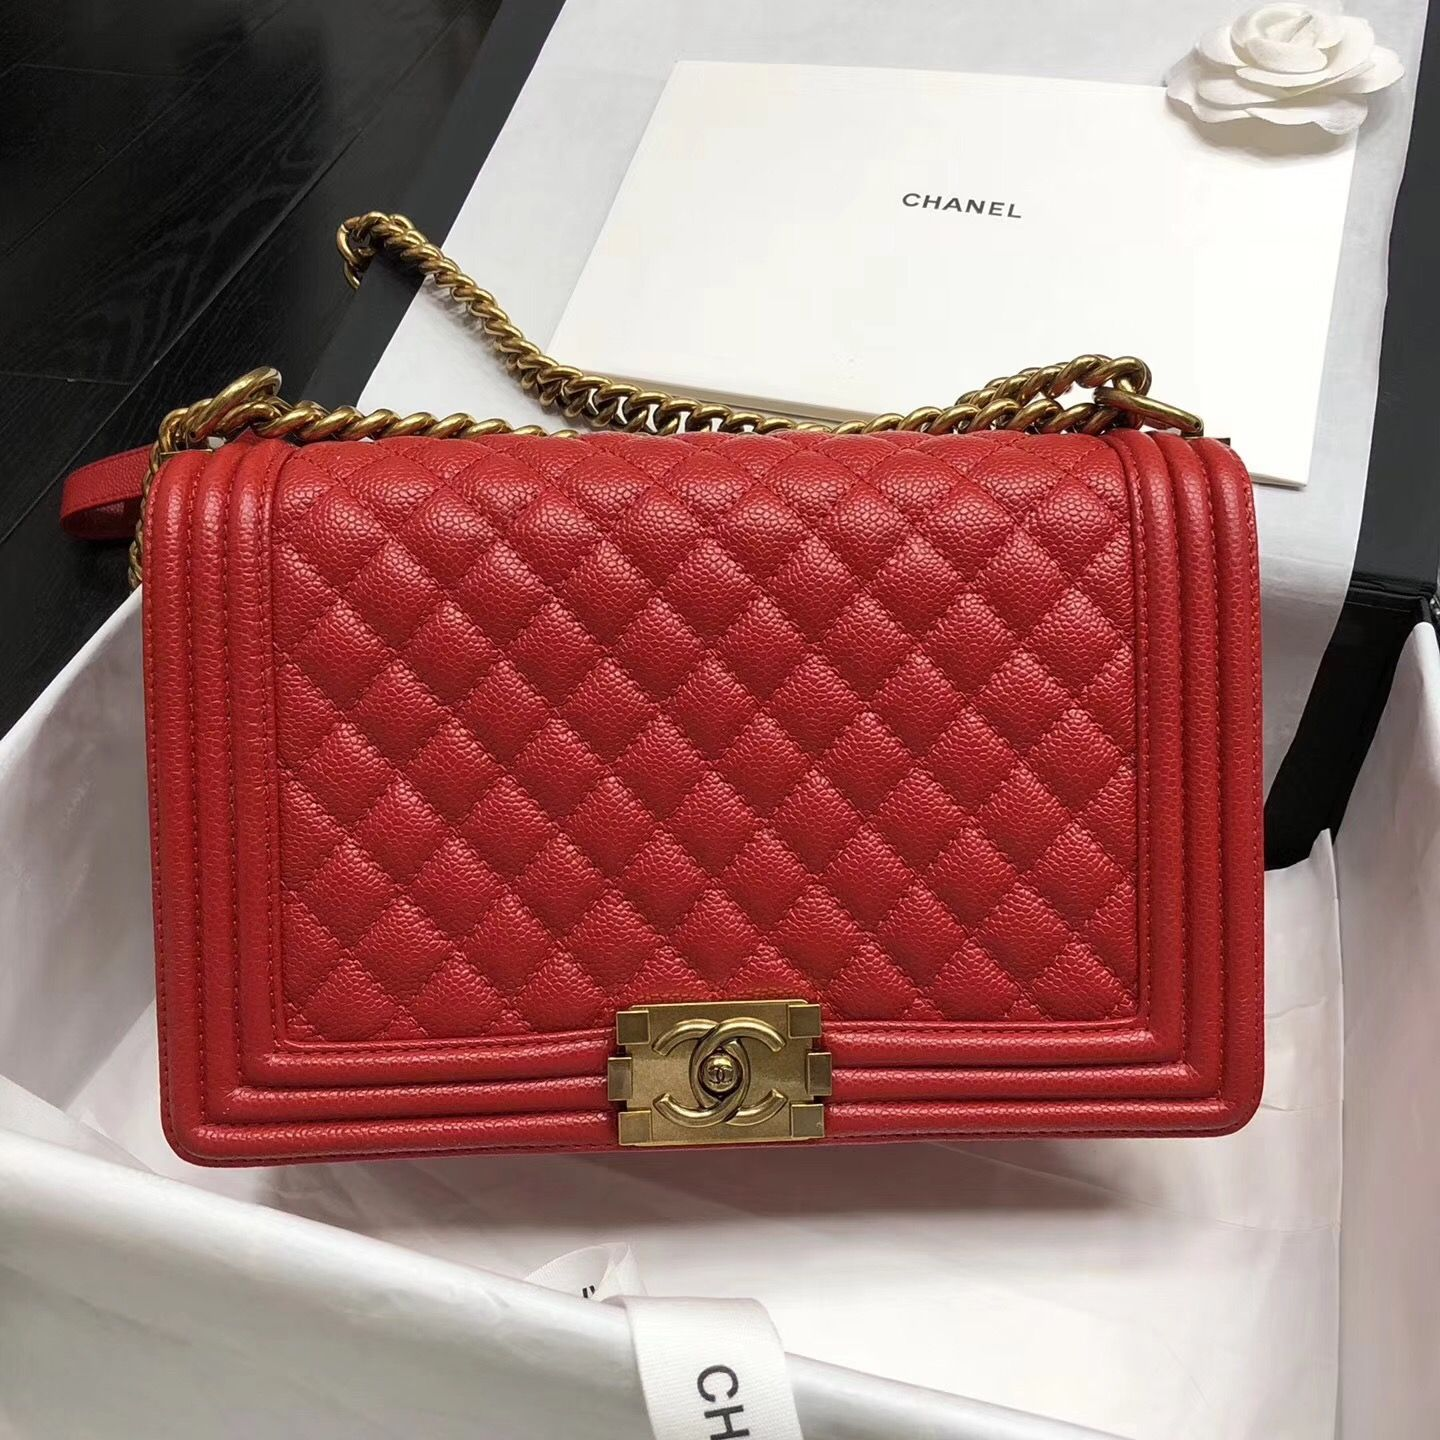 b38056eb3679 Chanel New Medium Original Caviar Leather Le Boy Flap Bag 28cm Red ...